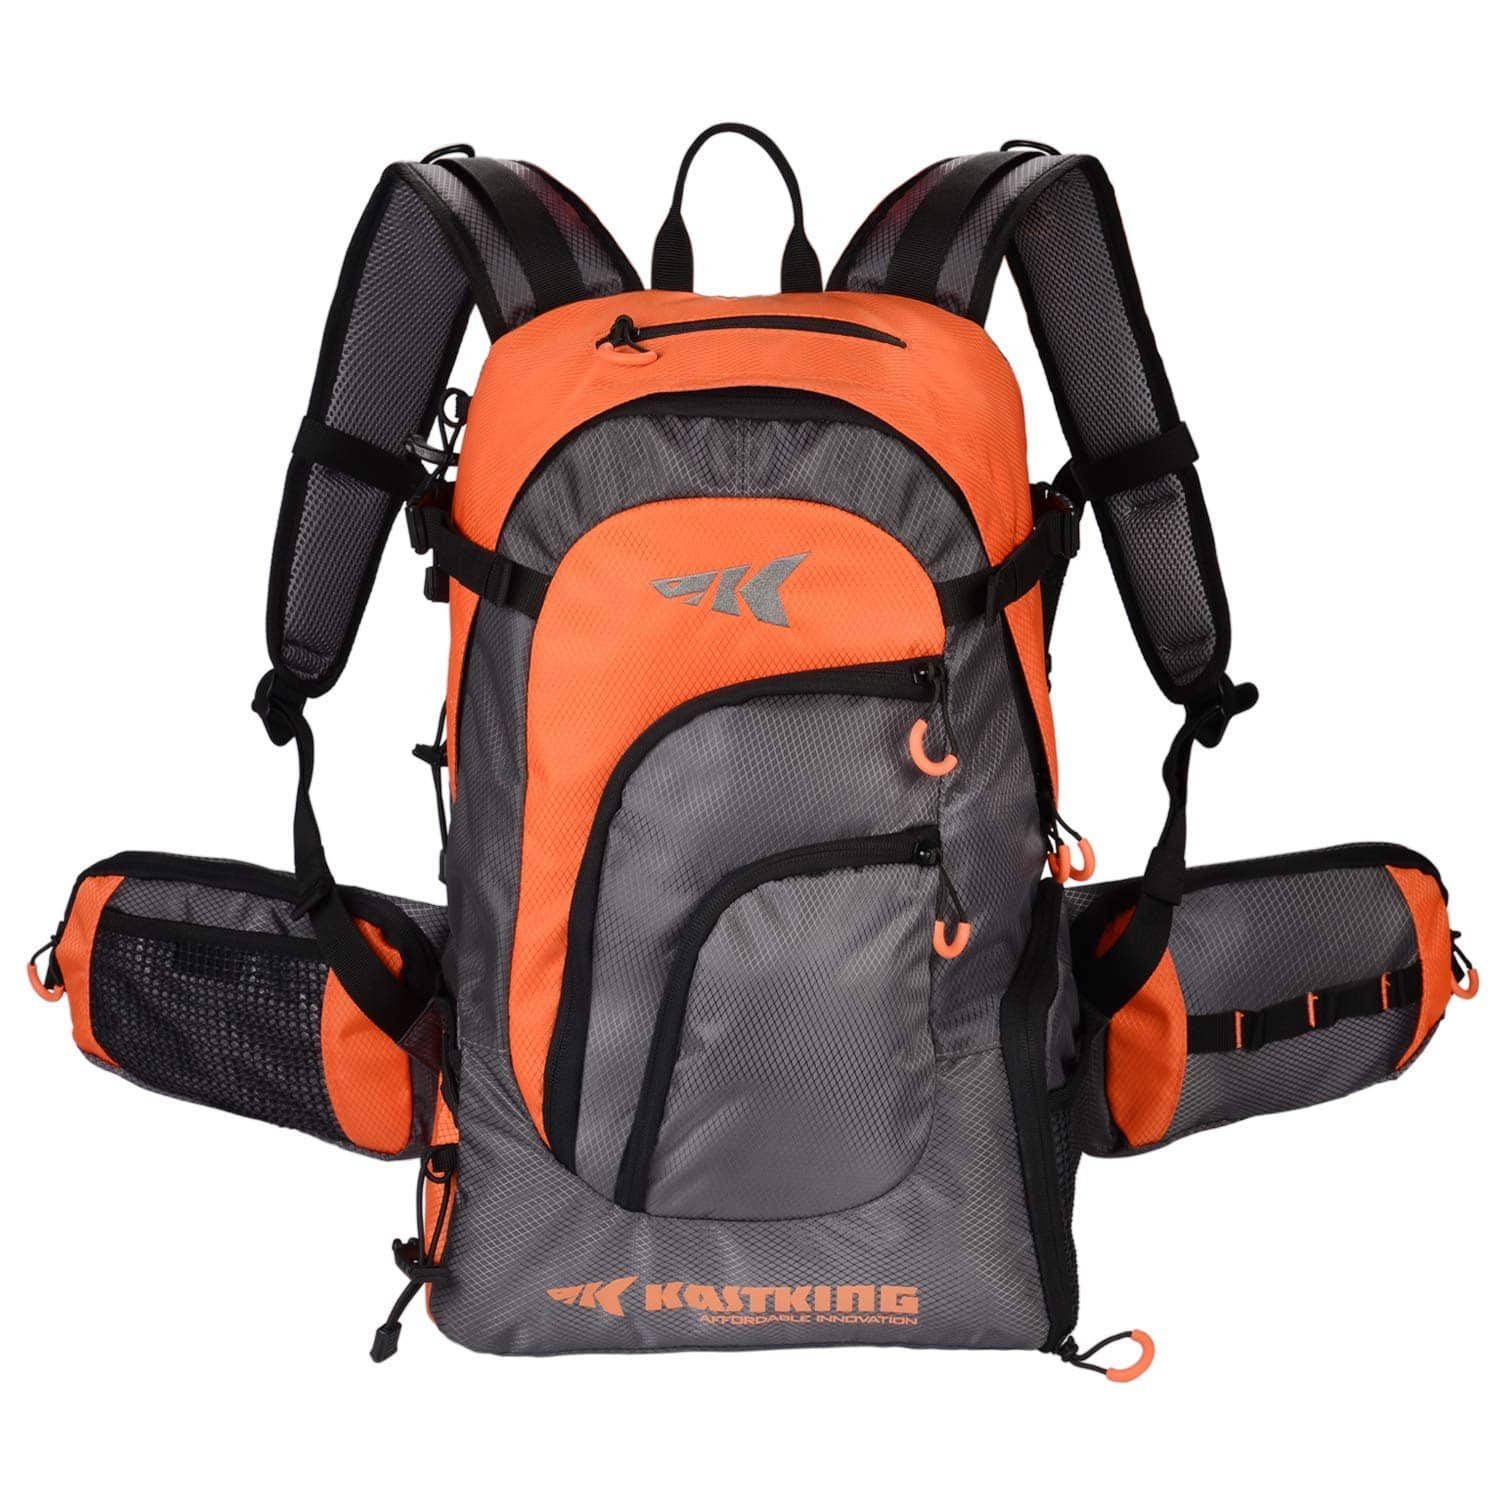 fd913583e27c KastKing Backpack Large Fishing Bag Outdoor Bag for Fishing, Skiing ...